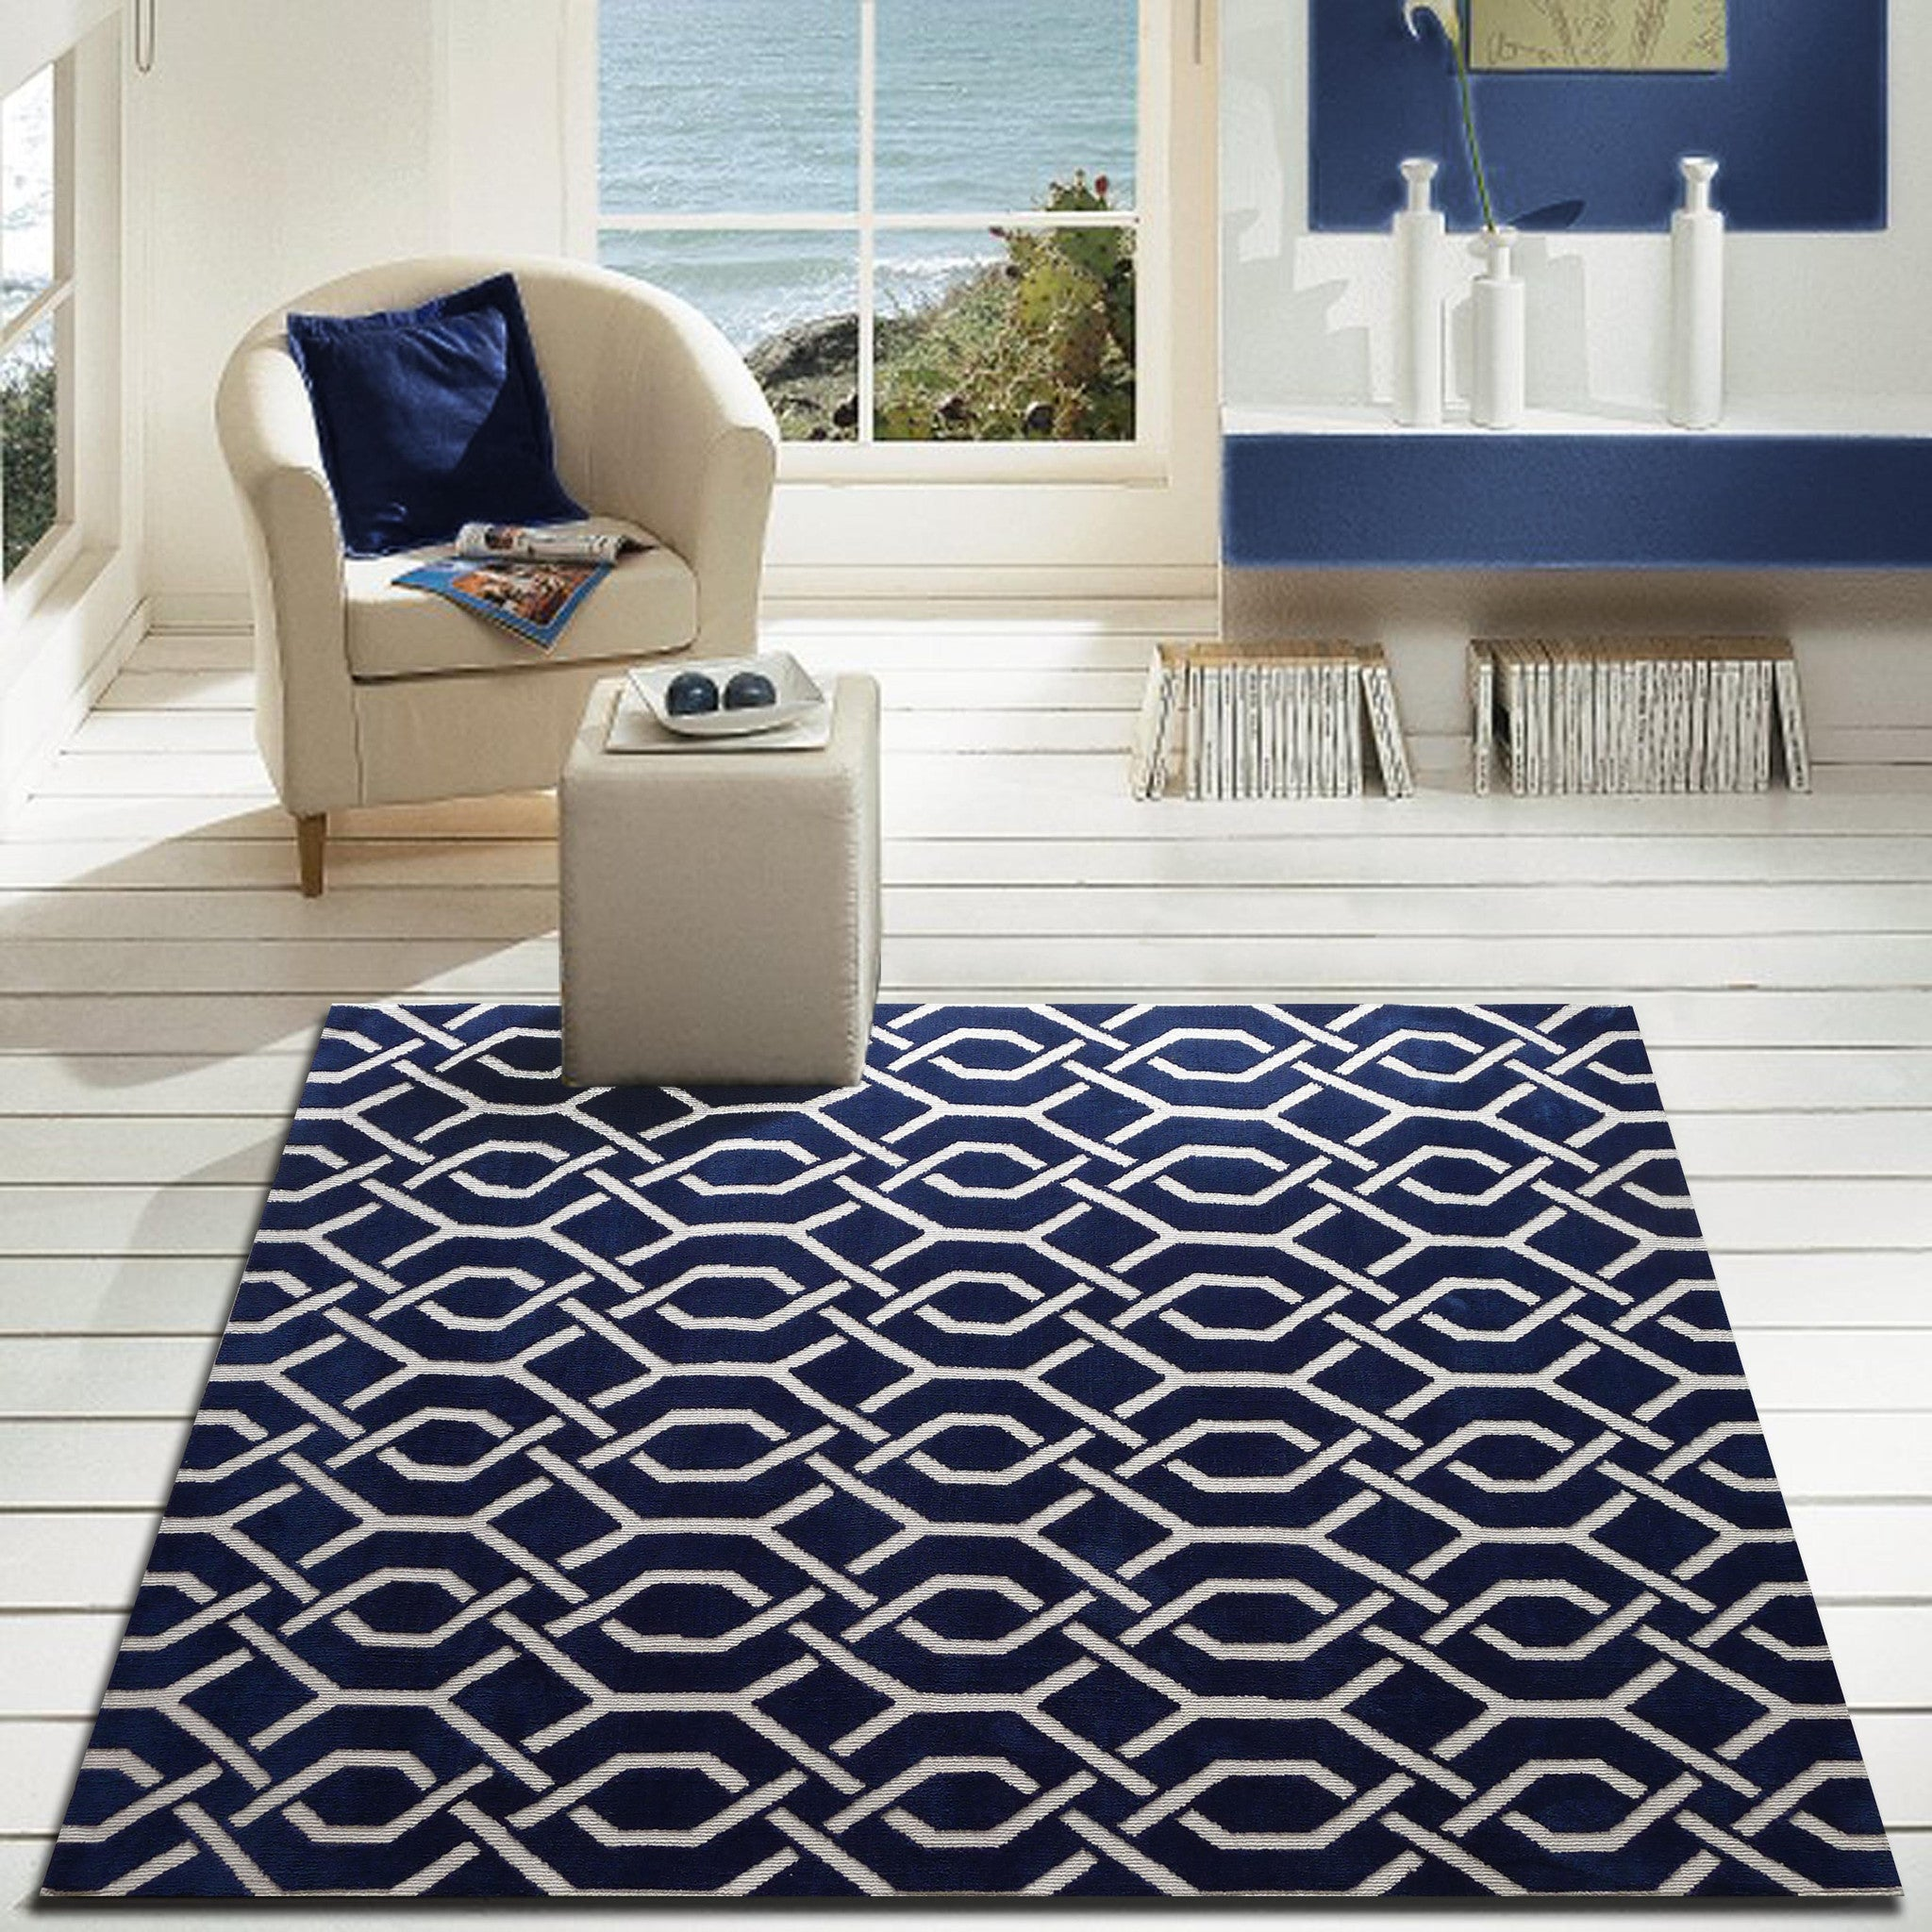 Bedroom Area Rugs modern contemporary navy blue bedroom area rug - rug addiction